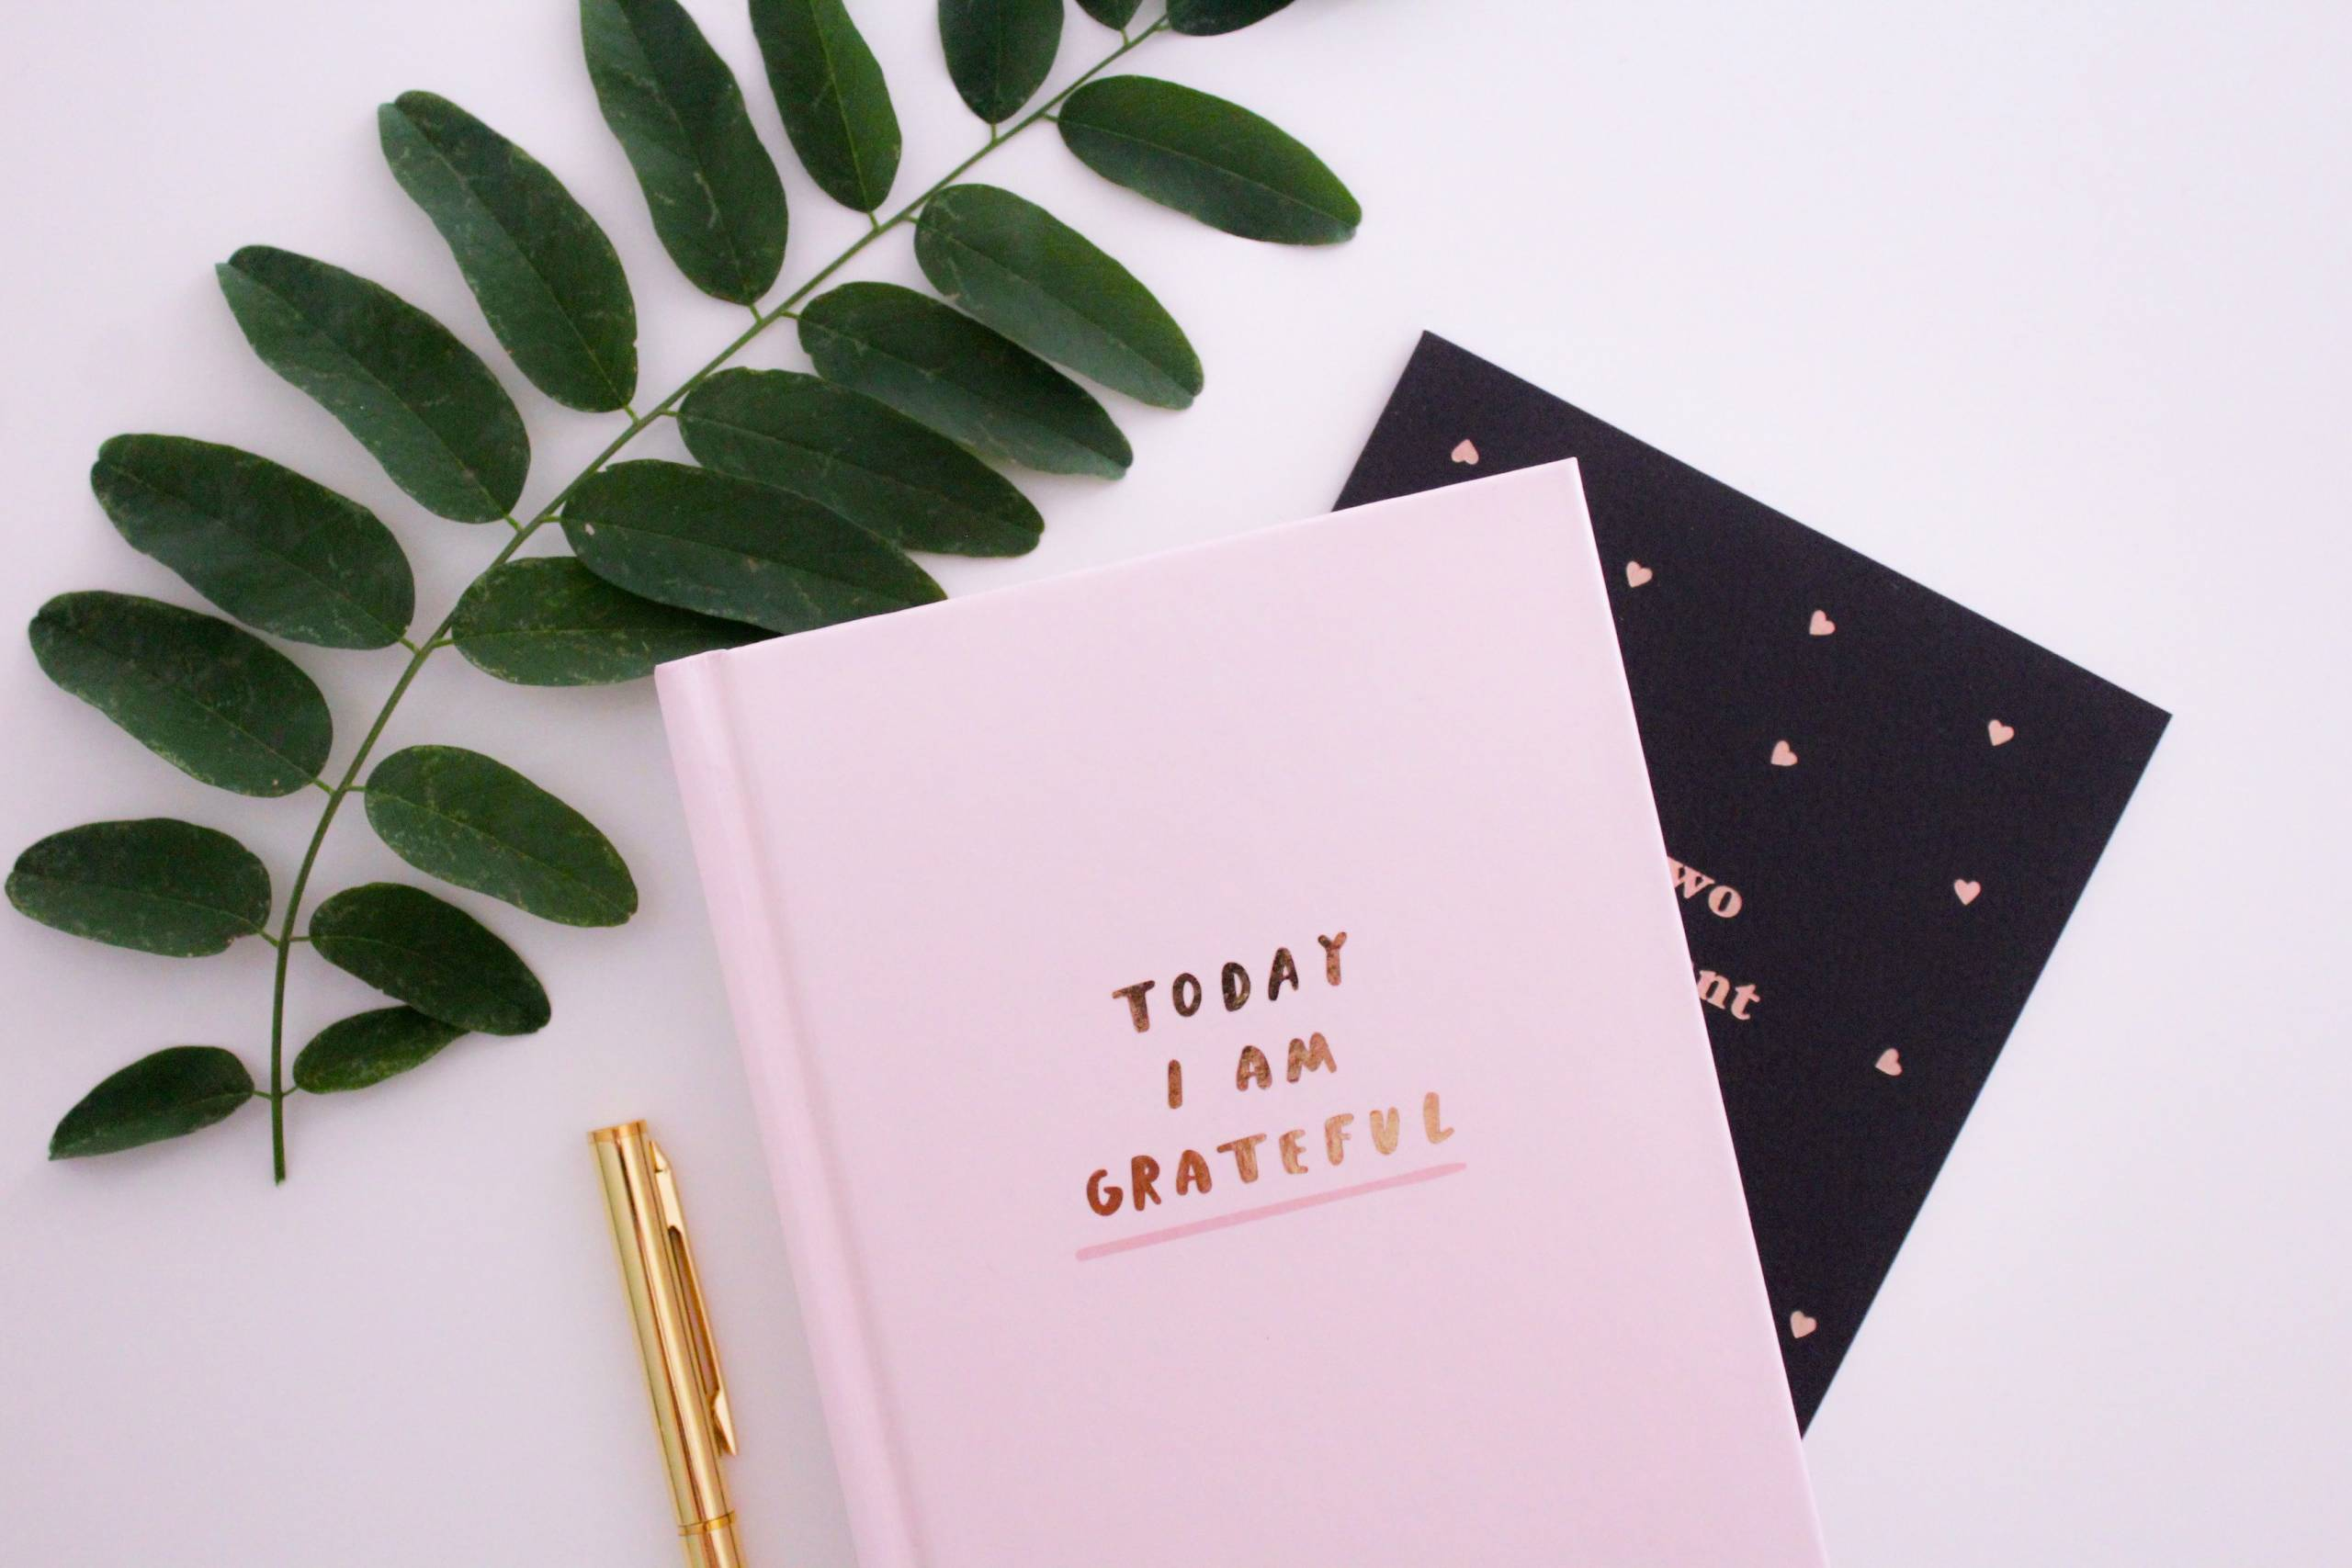 A gratitude journal places you in a more mindful state